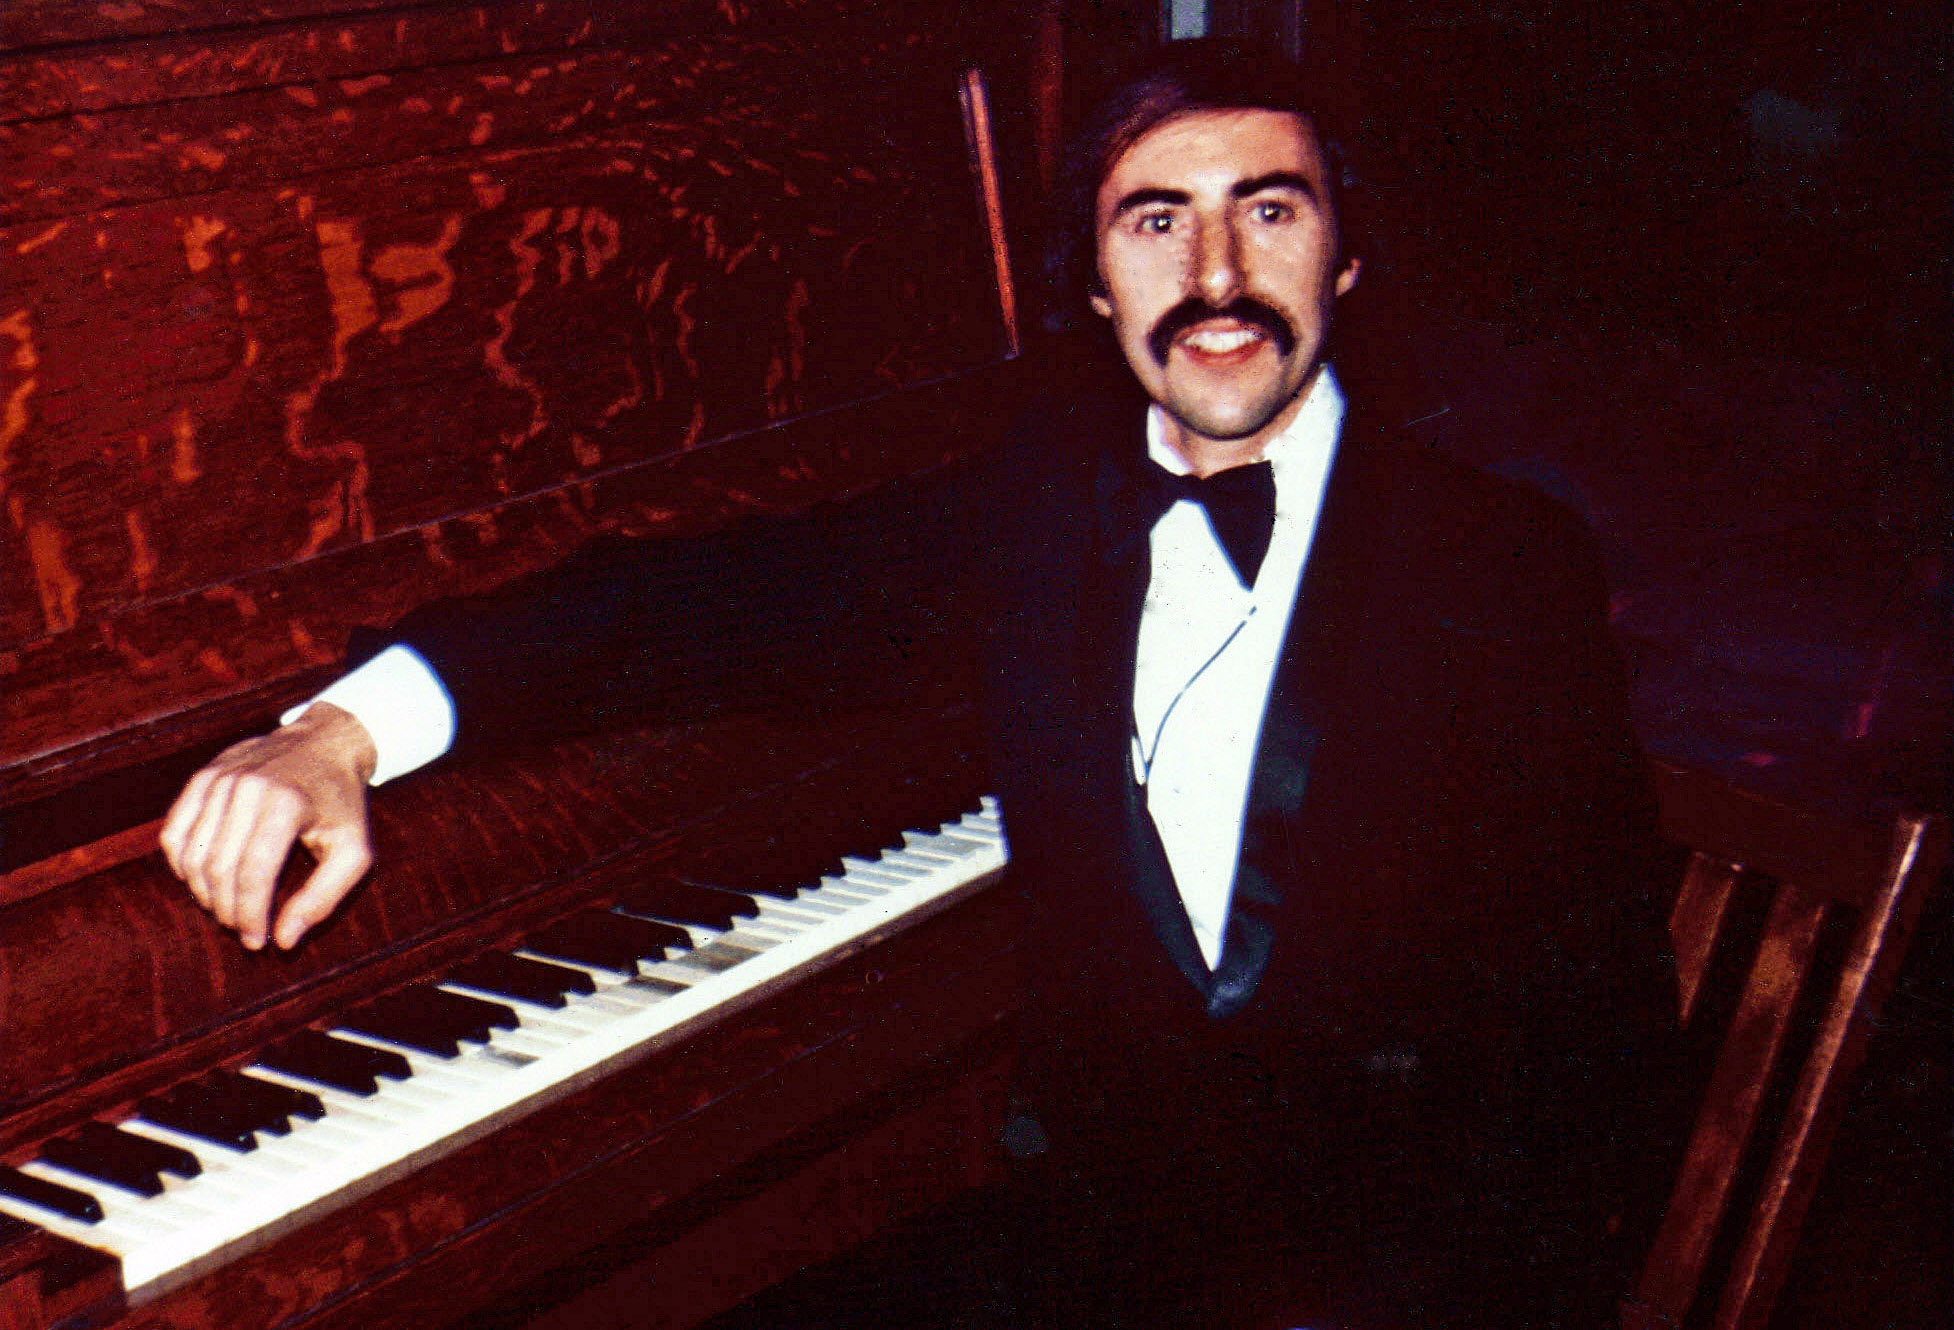 Denis at piano - 1975